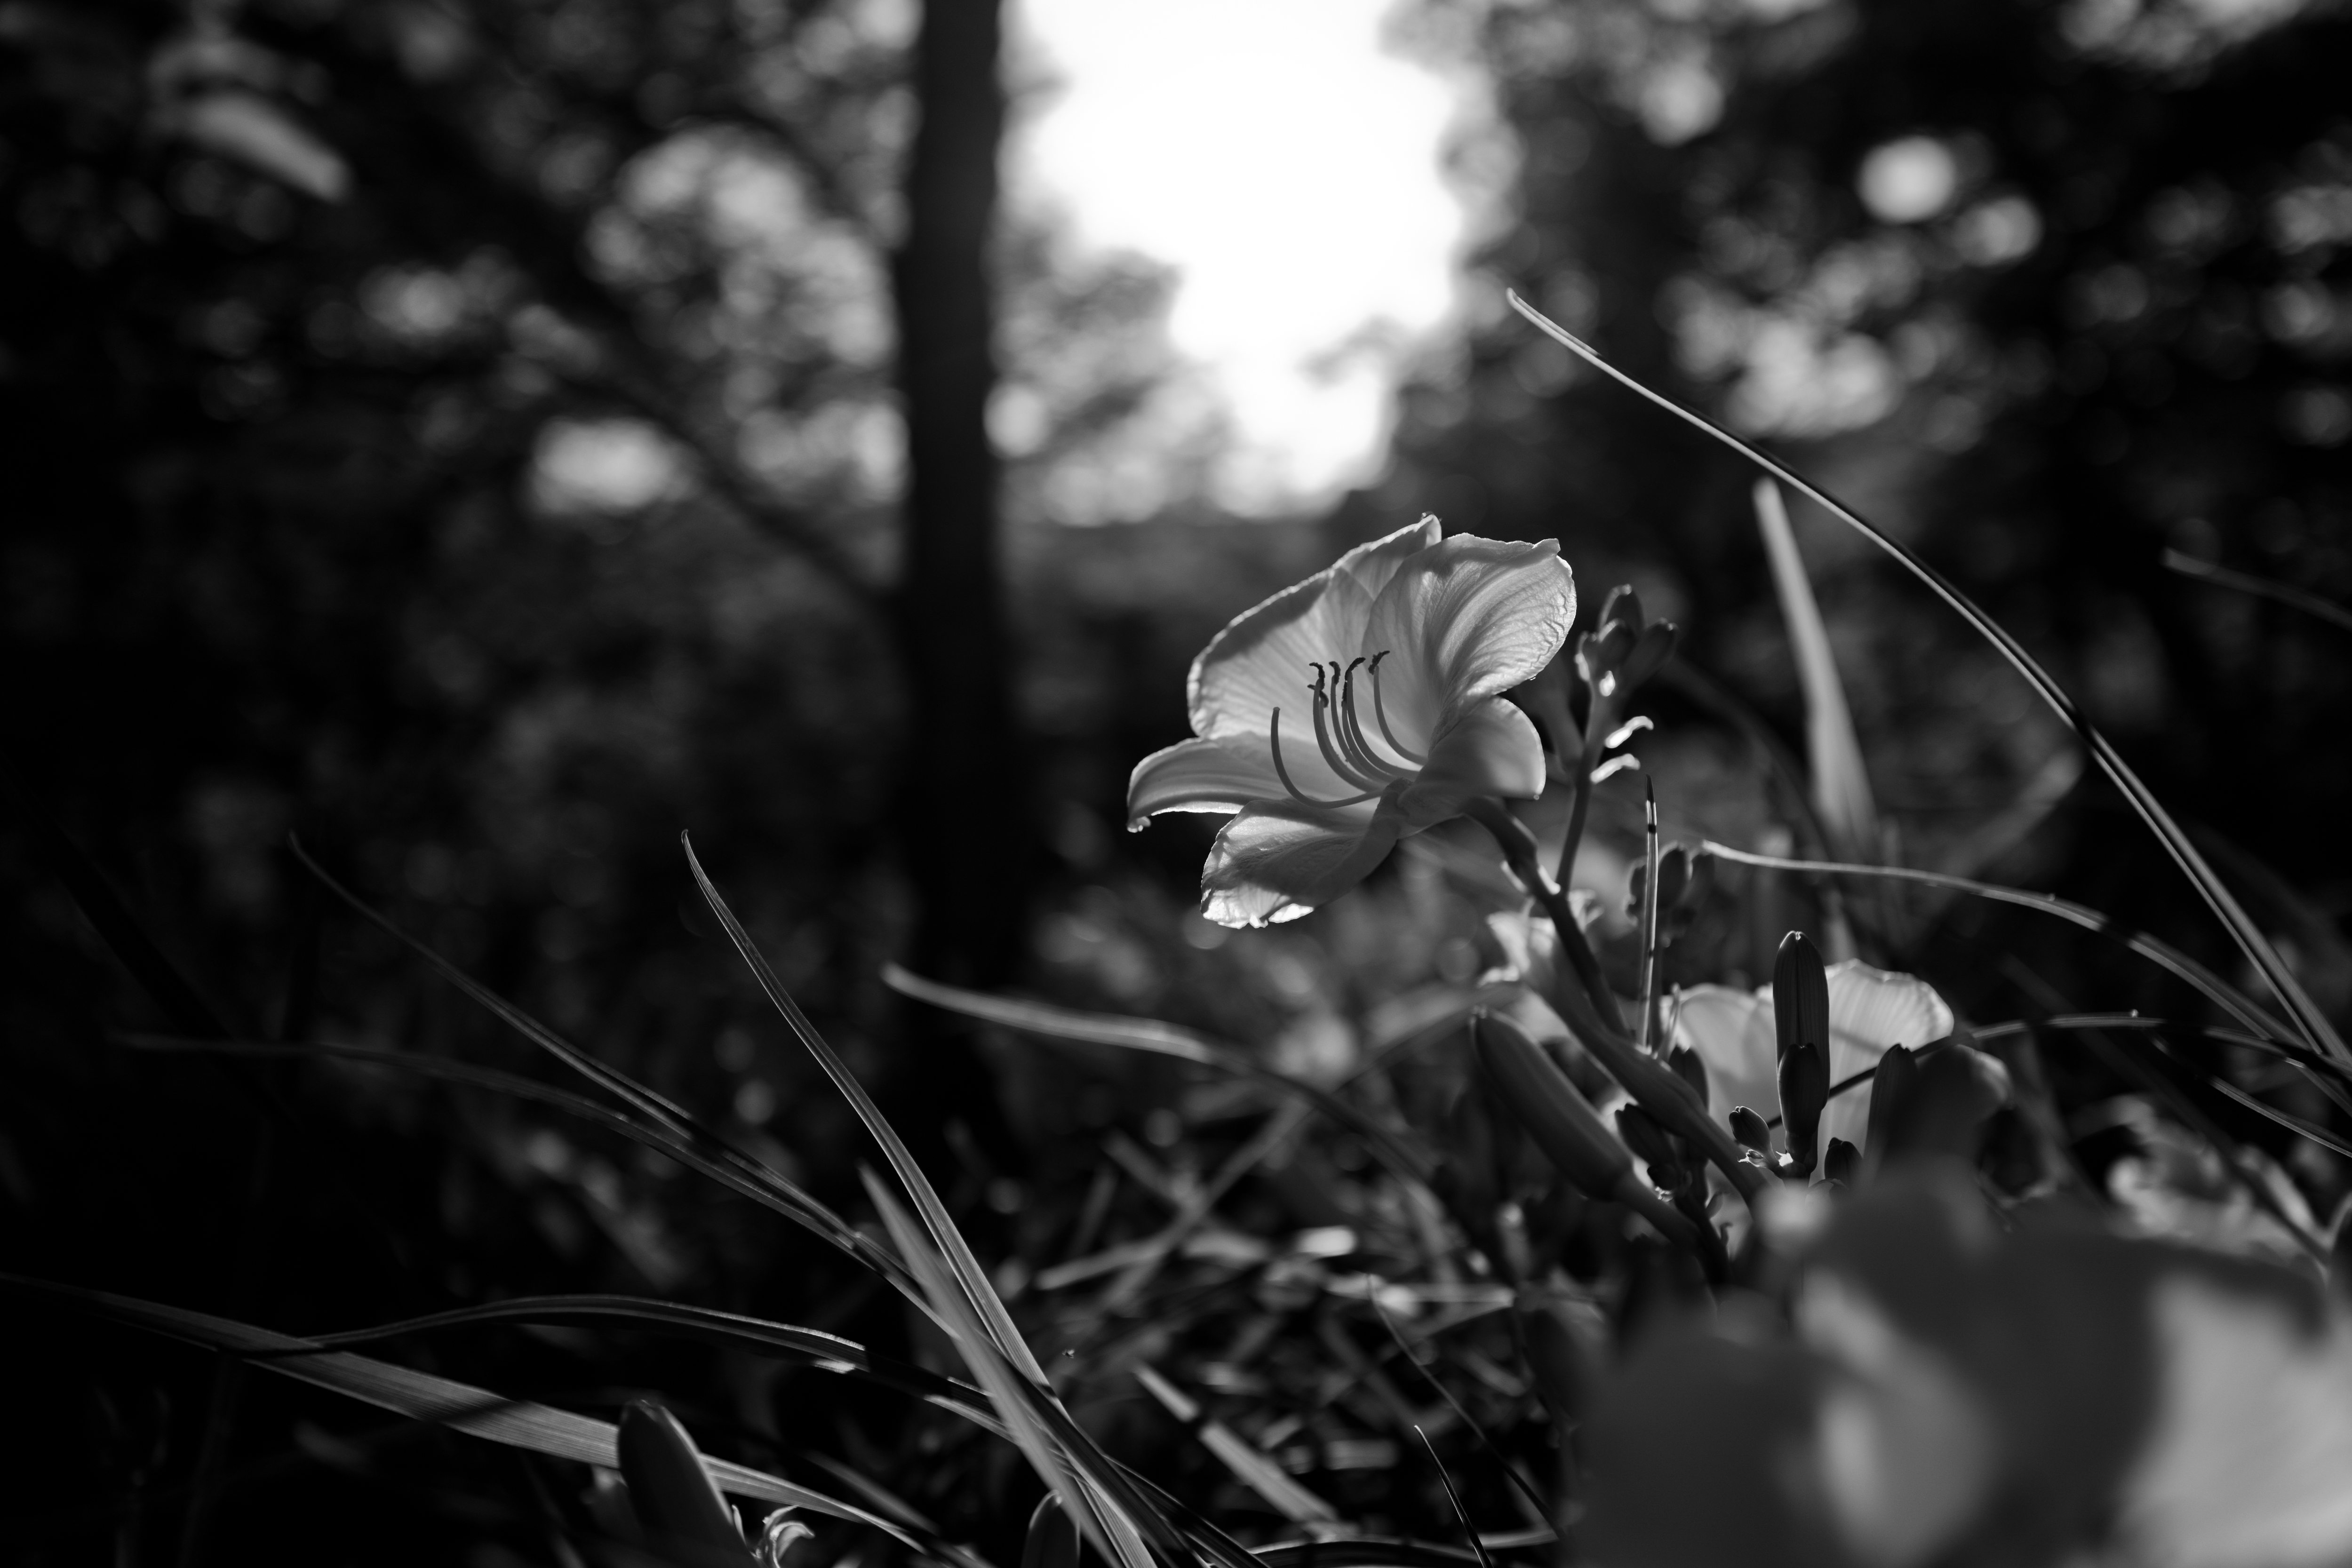 A photo of a flower taken by the Leica Q (Type 116).